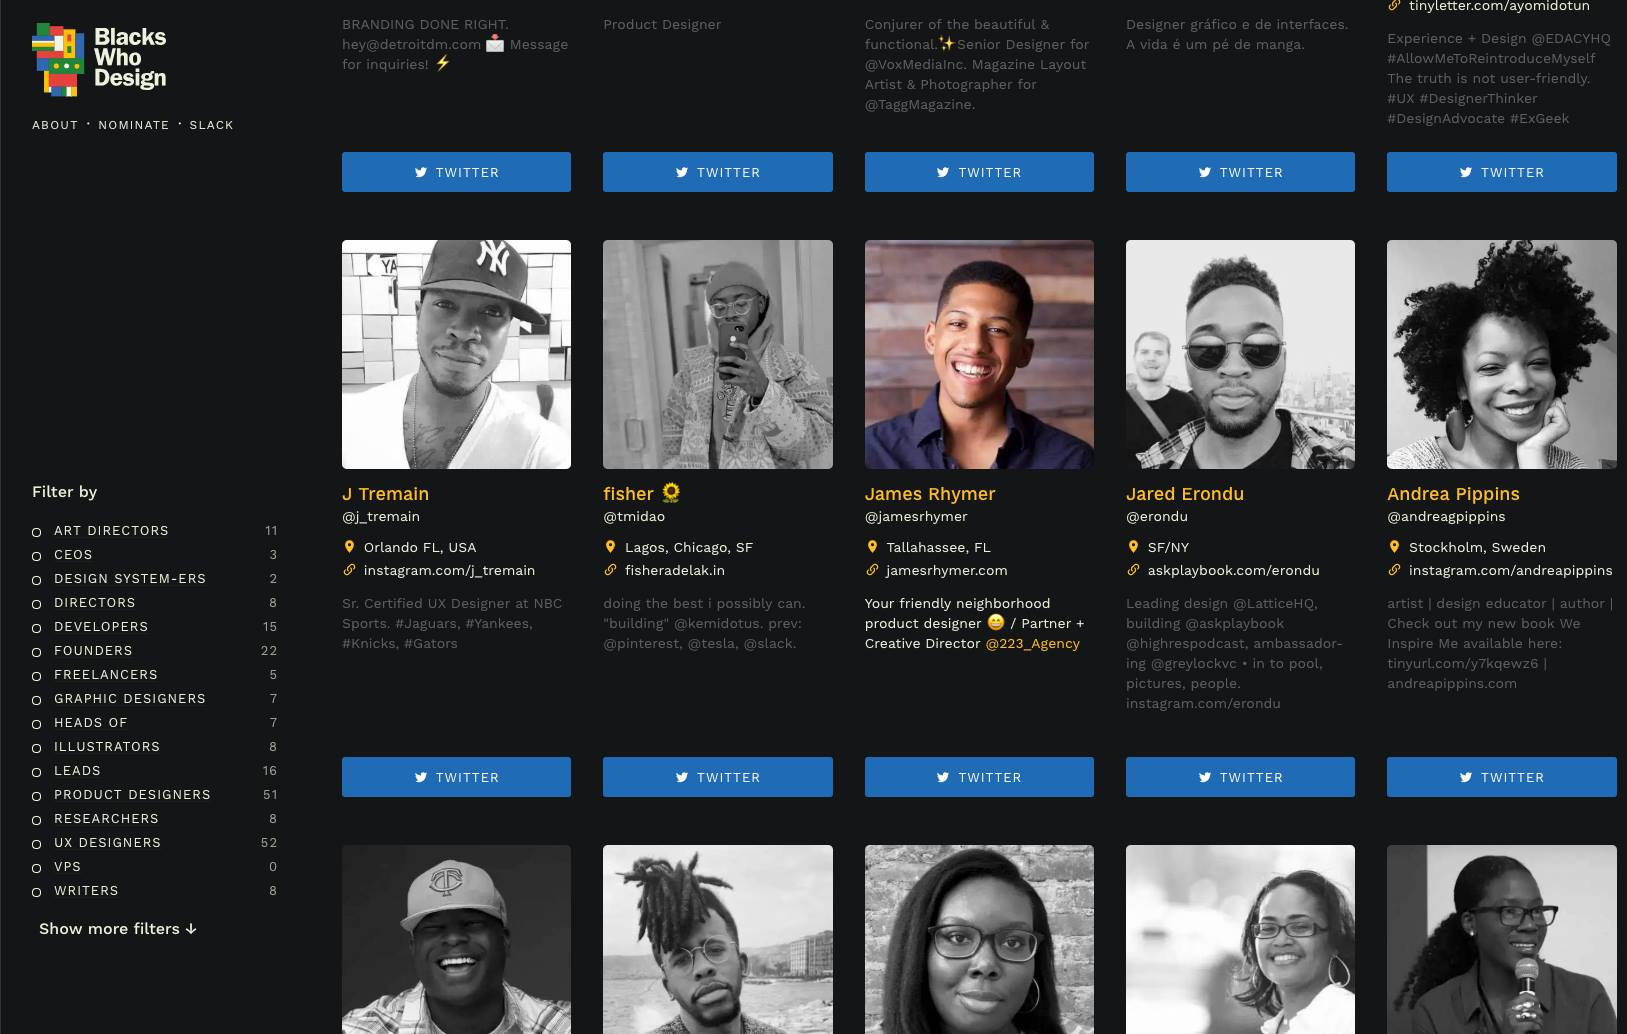 Blacks Who Design - I was recently featured on Blacks Who Design ✌�: a directory that highlights all of the inspiring Black designers in the industry. The goal is to inspire new designers, encourage people to diversify their feeds, and discover amazing individuals to join your team. 👔https://blackswho.design/